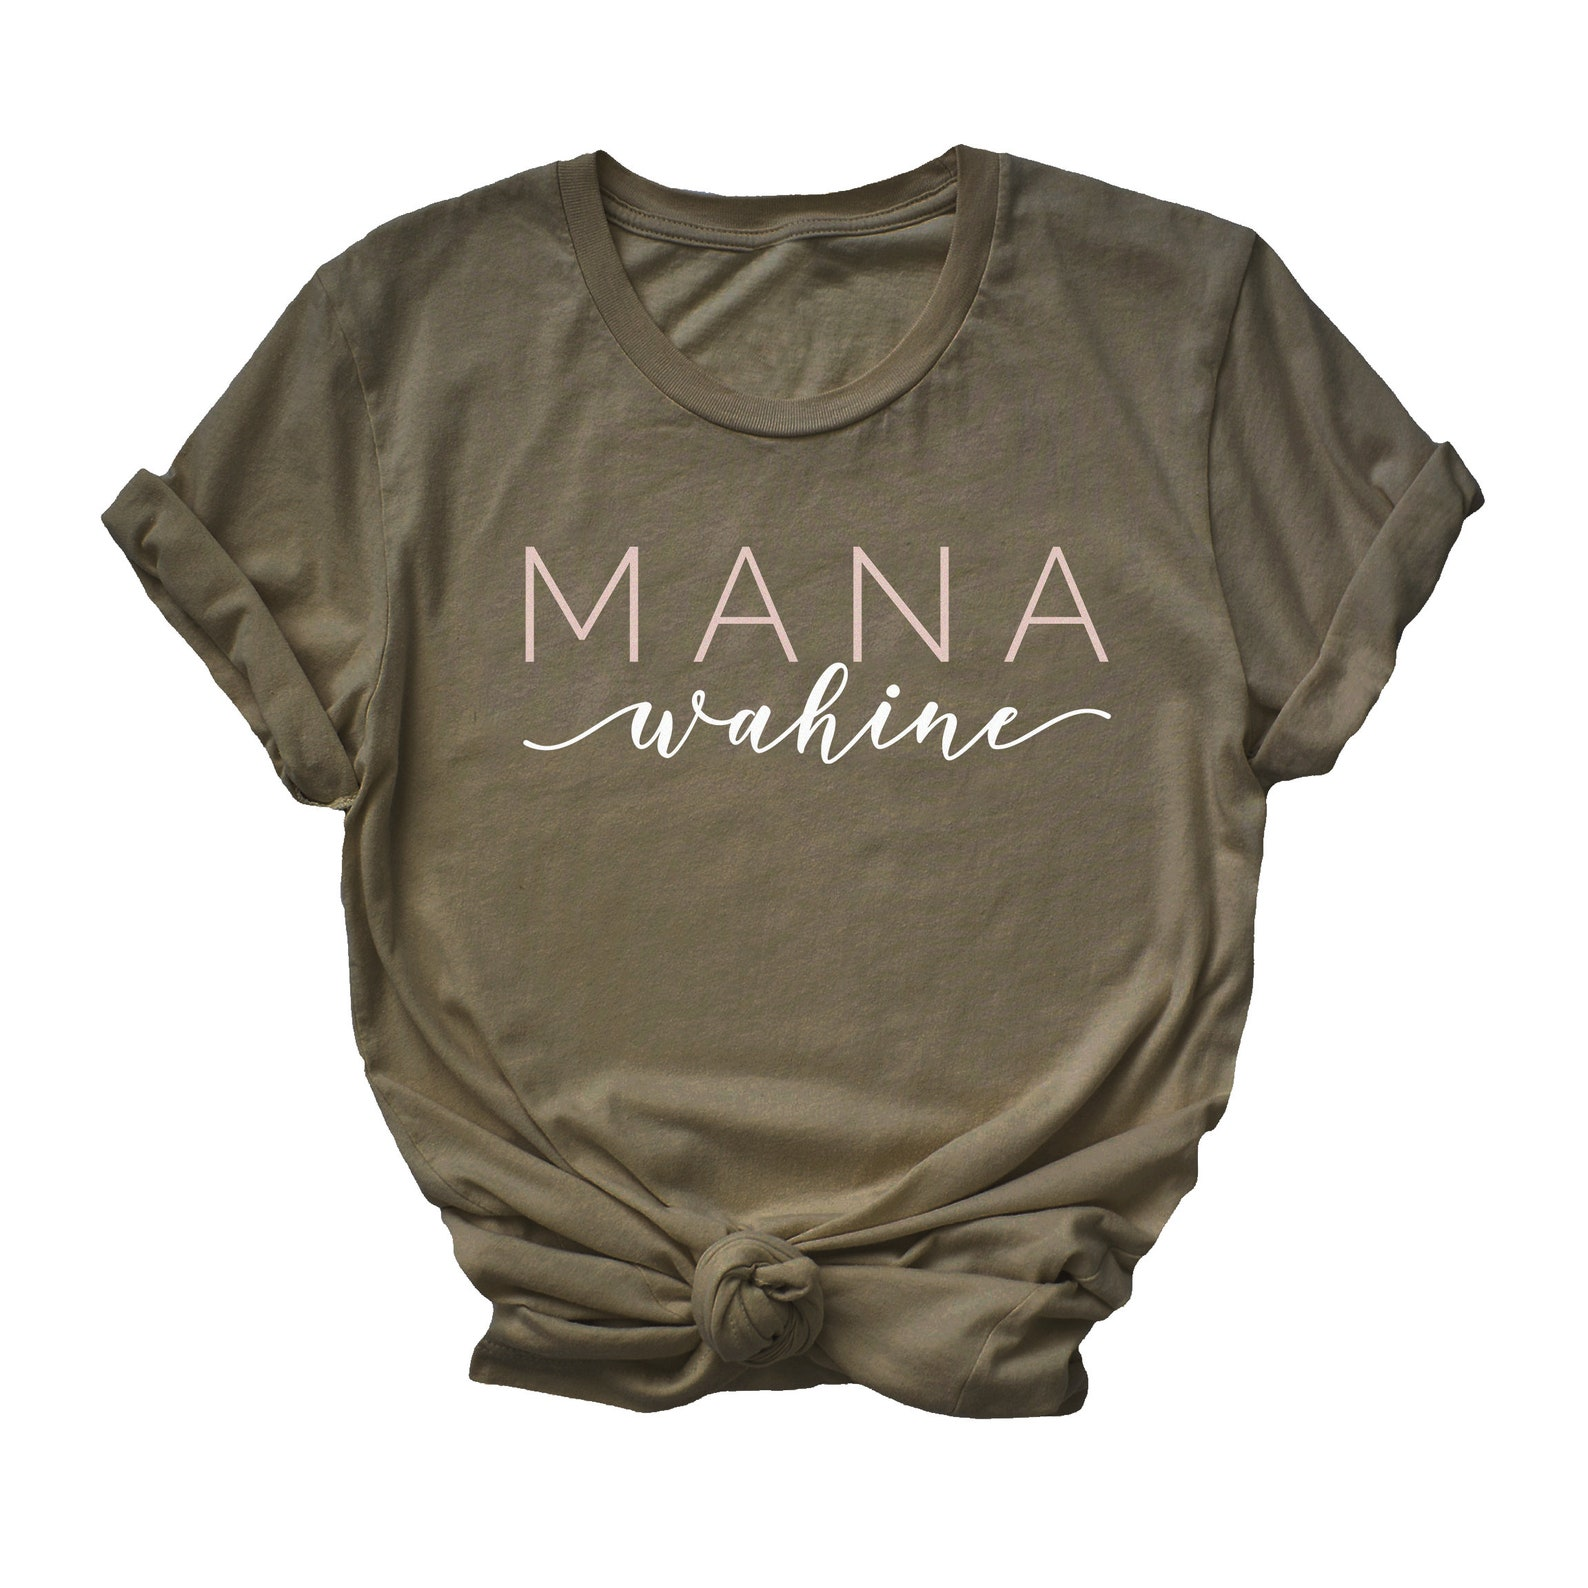 Power woman t-shirt makes for an awesome made in Hawaii gift